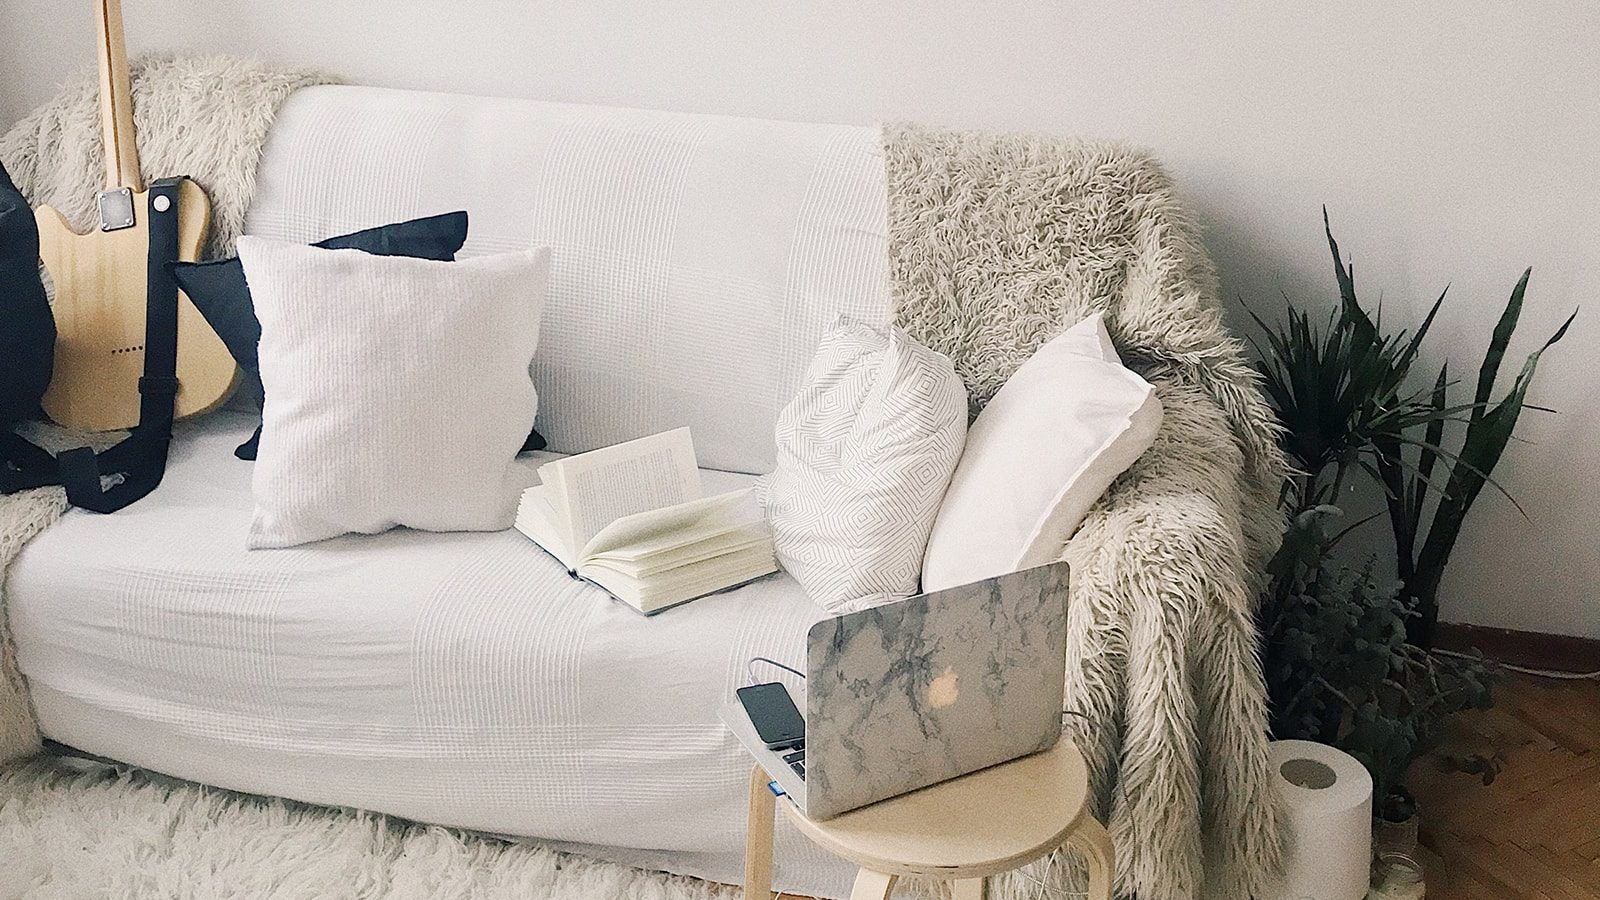 Hygge: A Perfect Winter Comfort Zone